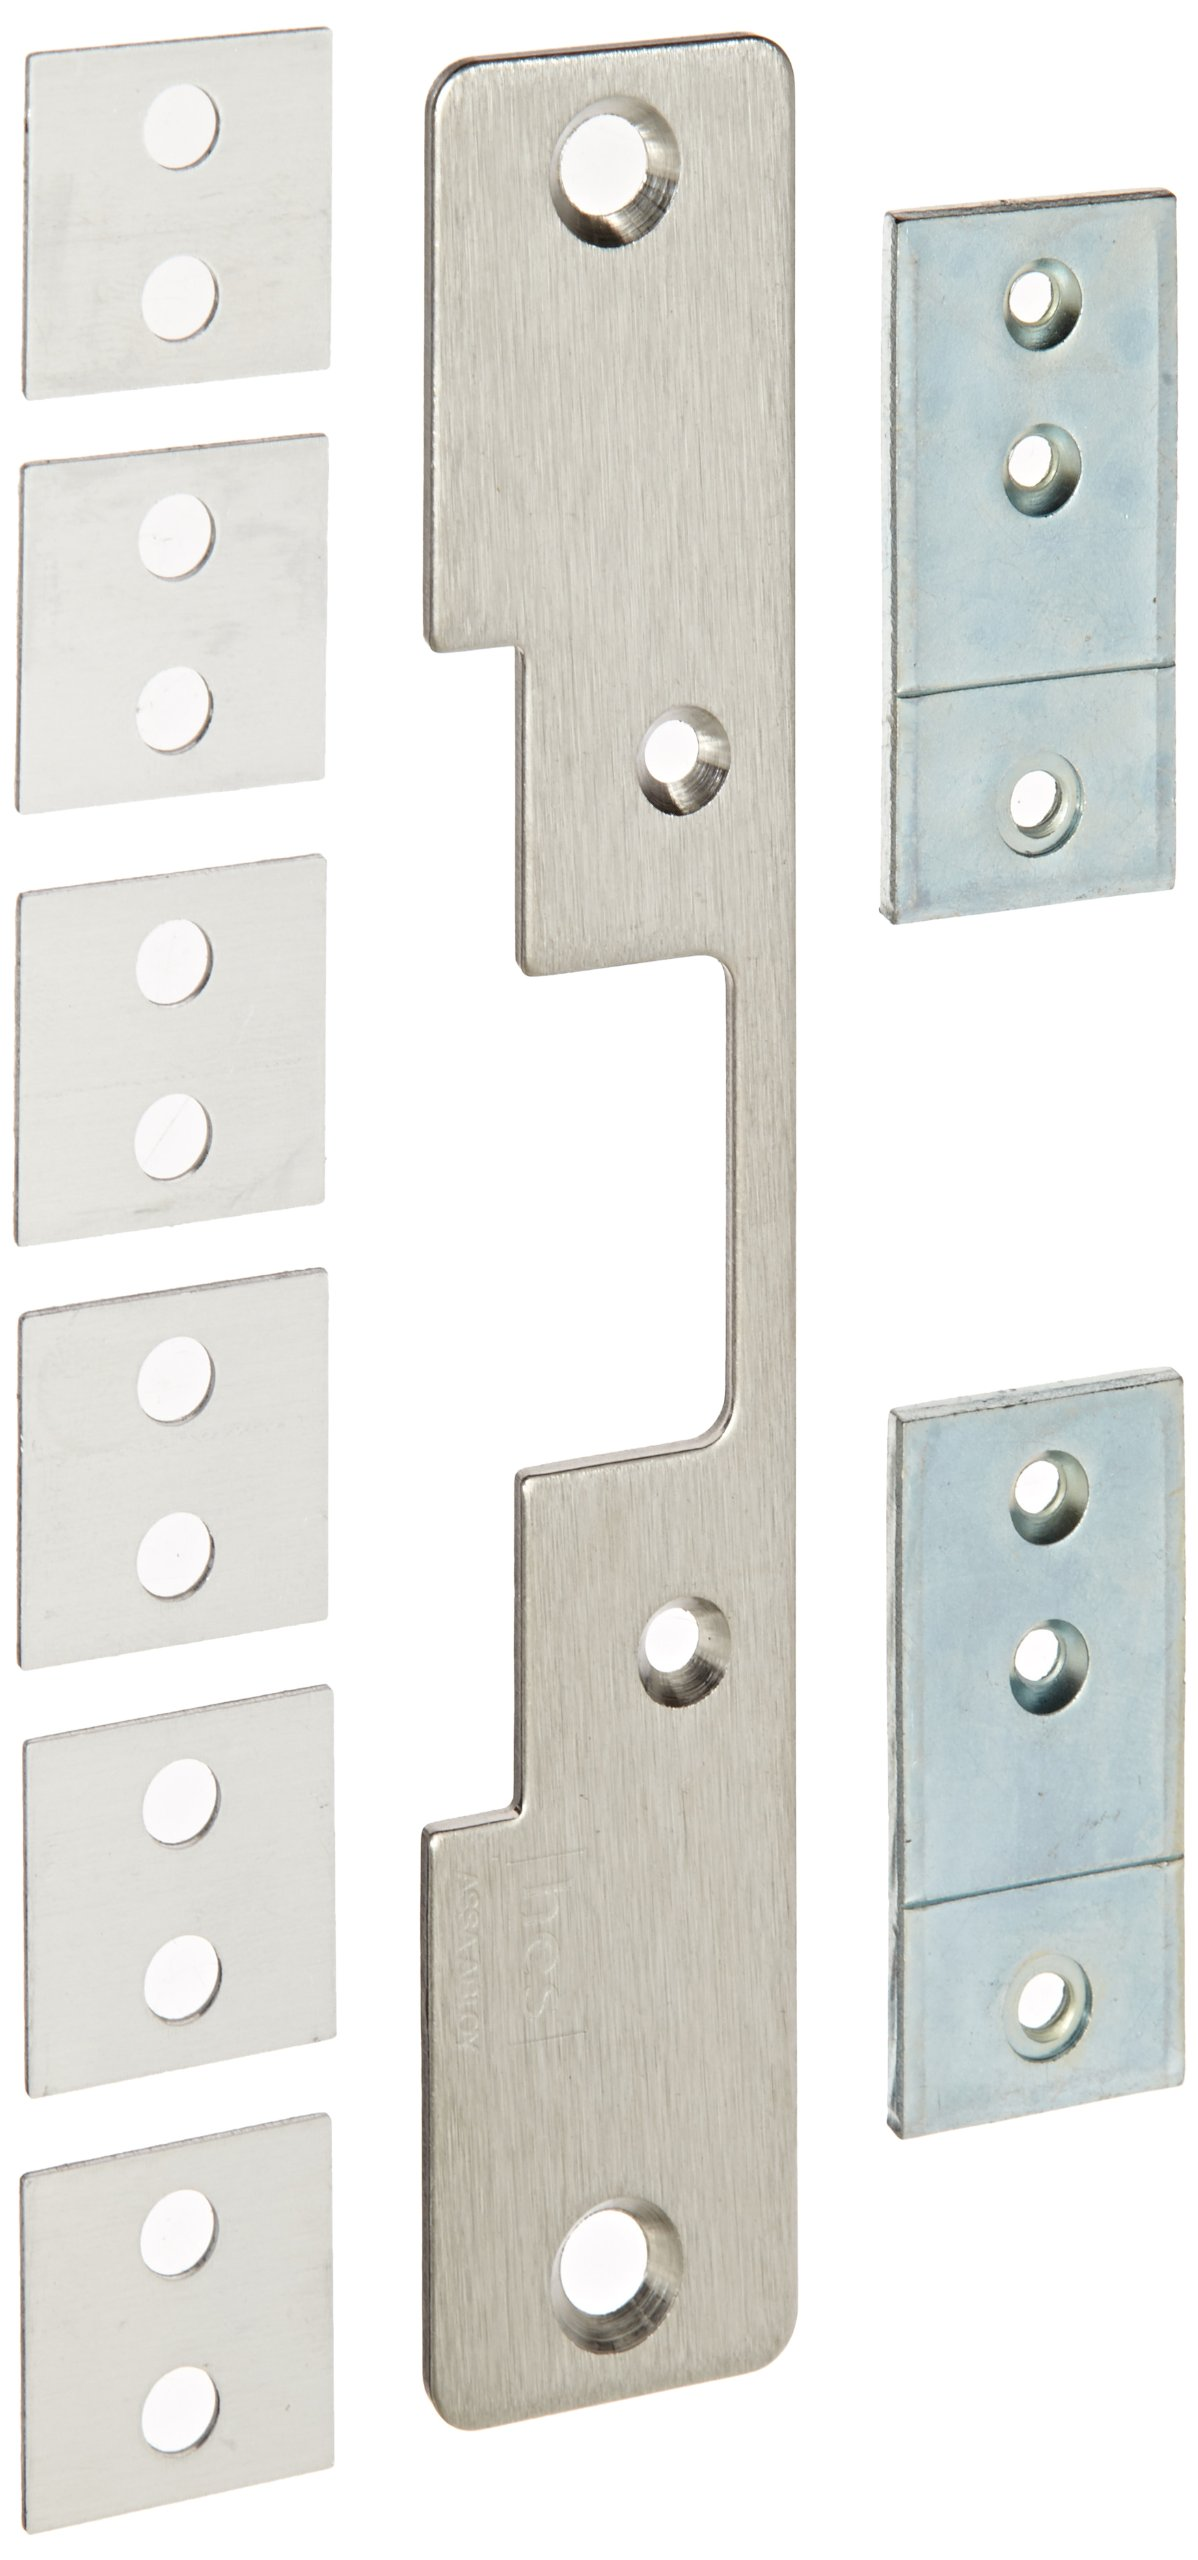 HES Stainless Steel 503 Faceplate for 5000 Series Electric Strikes for Cylindrical Locksets Includes Universal Mounting Tabs, Satin Stainless Steel Finish